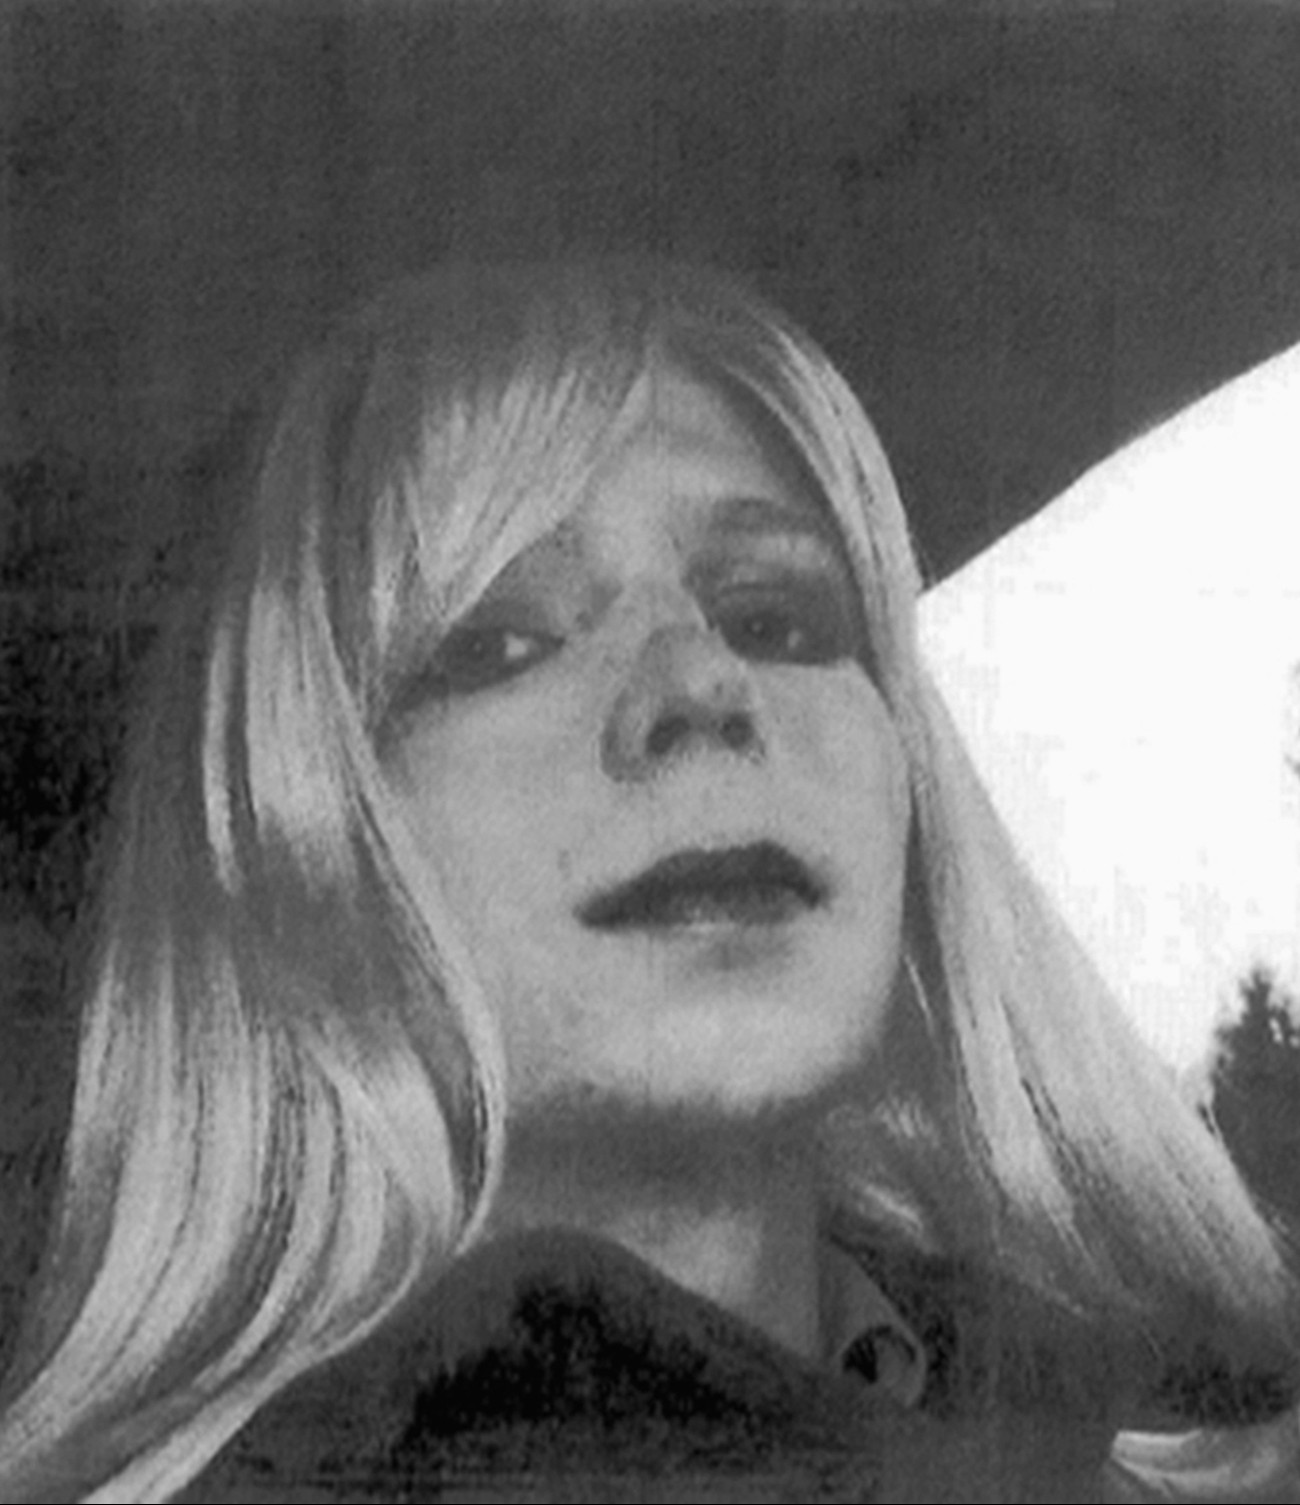 Chelsea Manning poses for a photo, in this file photo. (U.S. Army via AP)